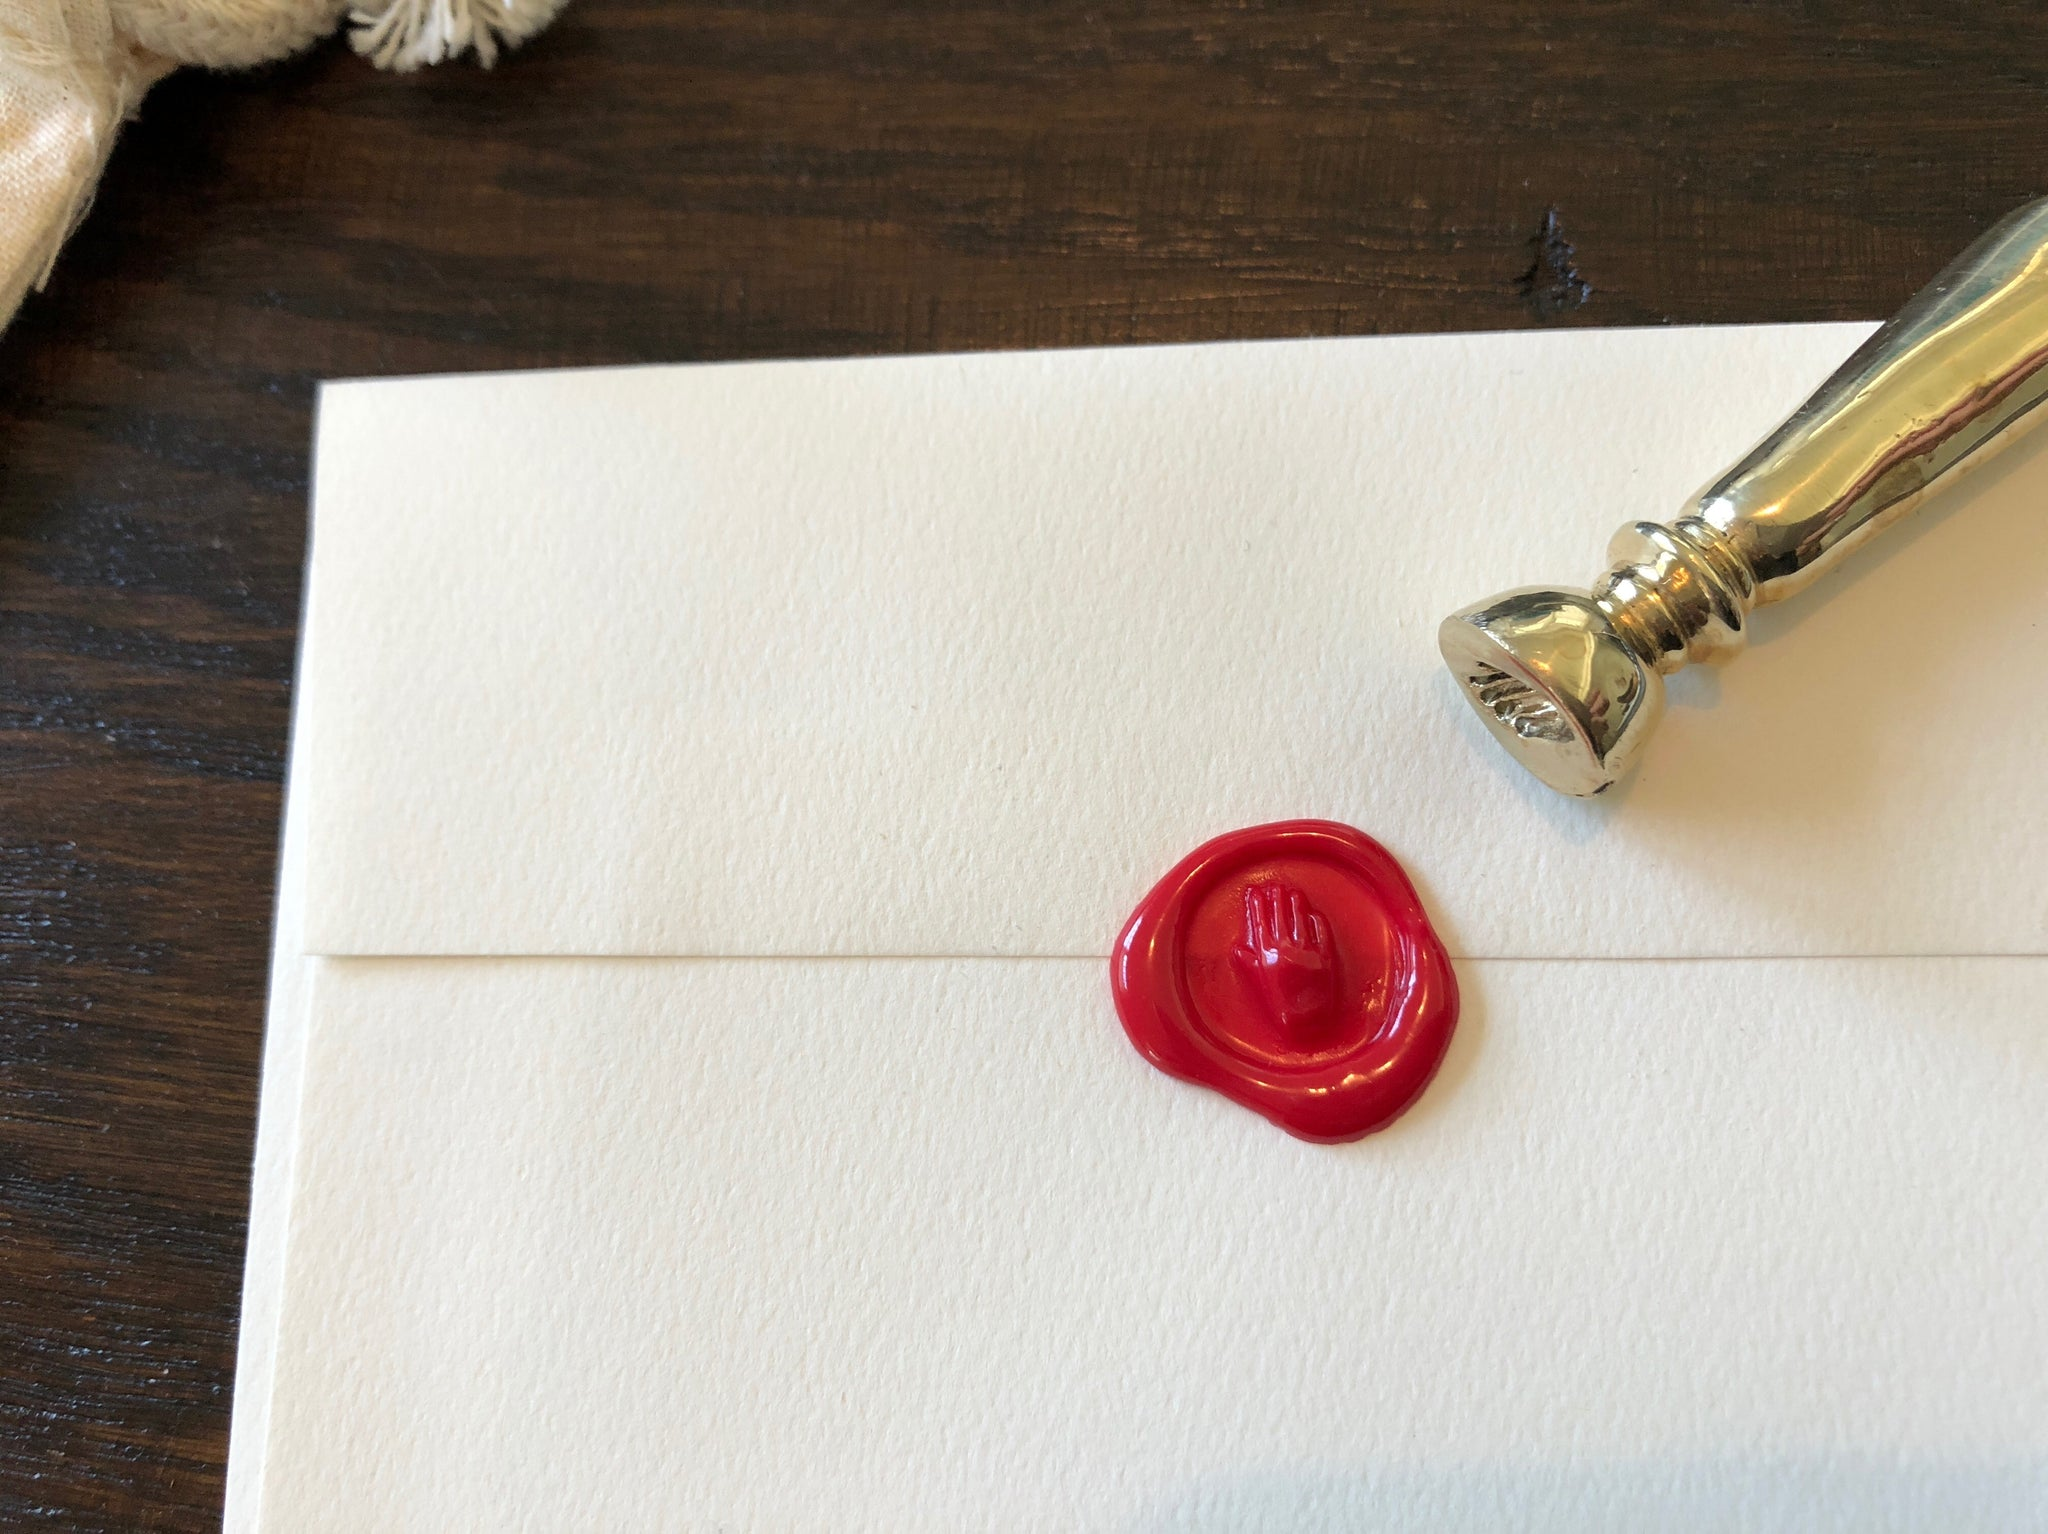 Wax Sealing Stamp: Hand